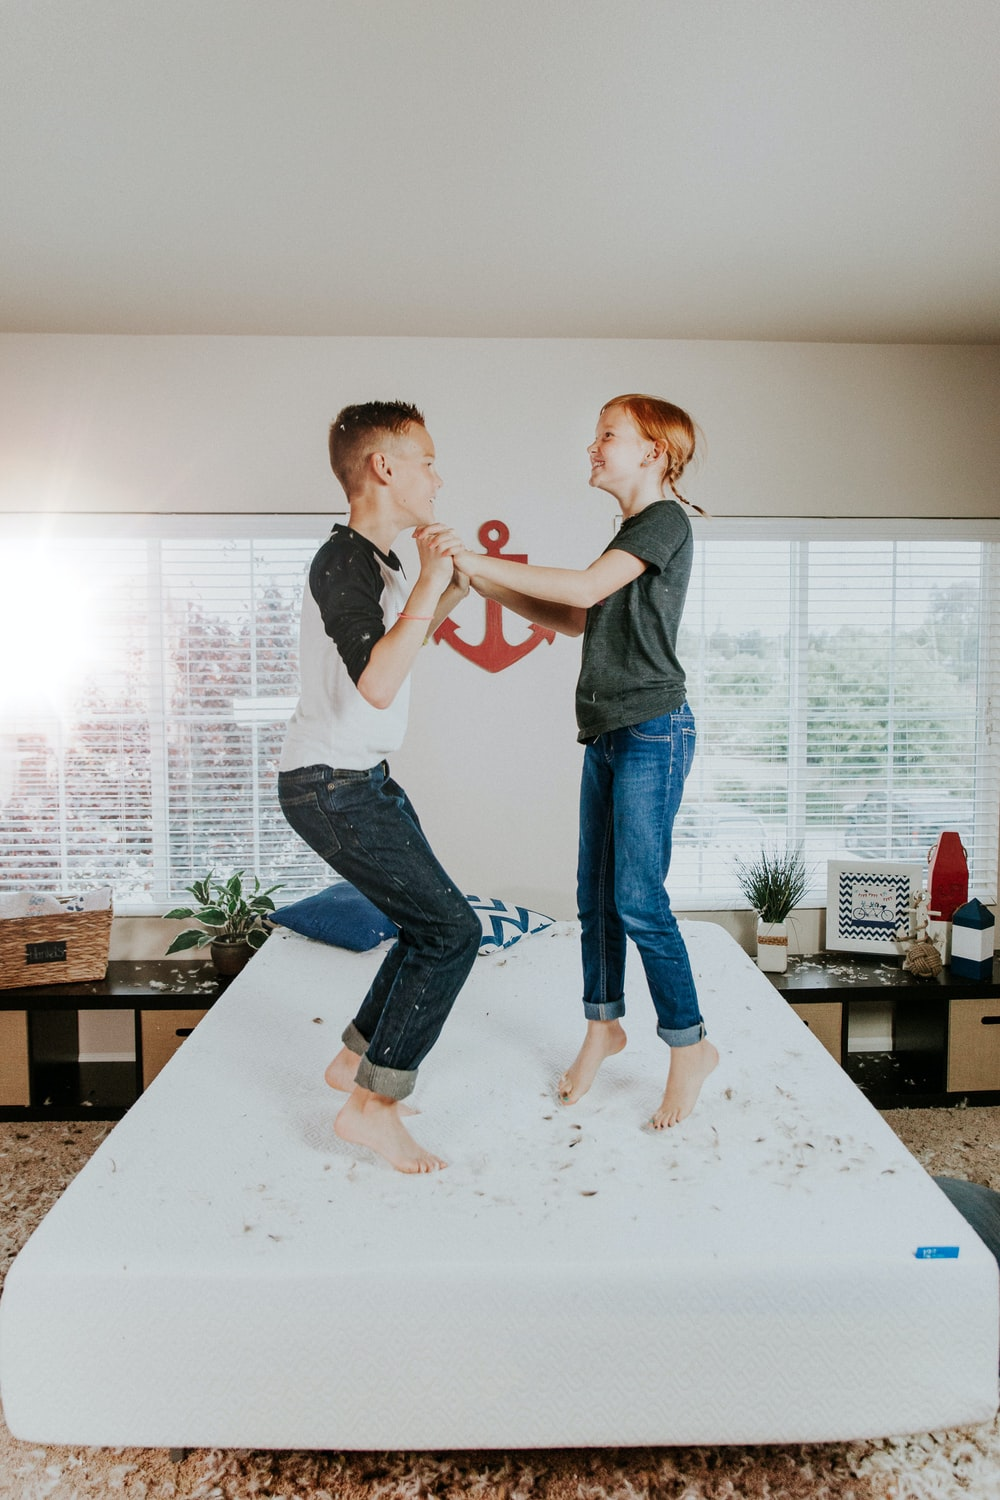 boy and girl jumping on white bed mattress inside room